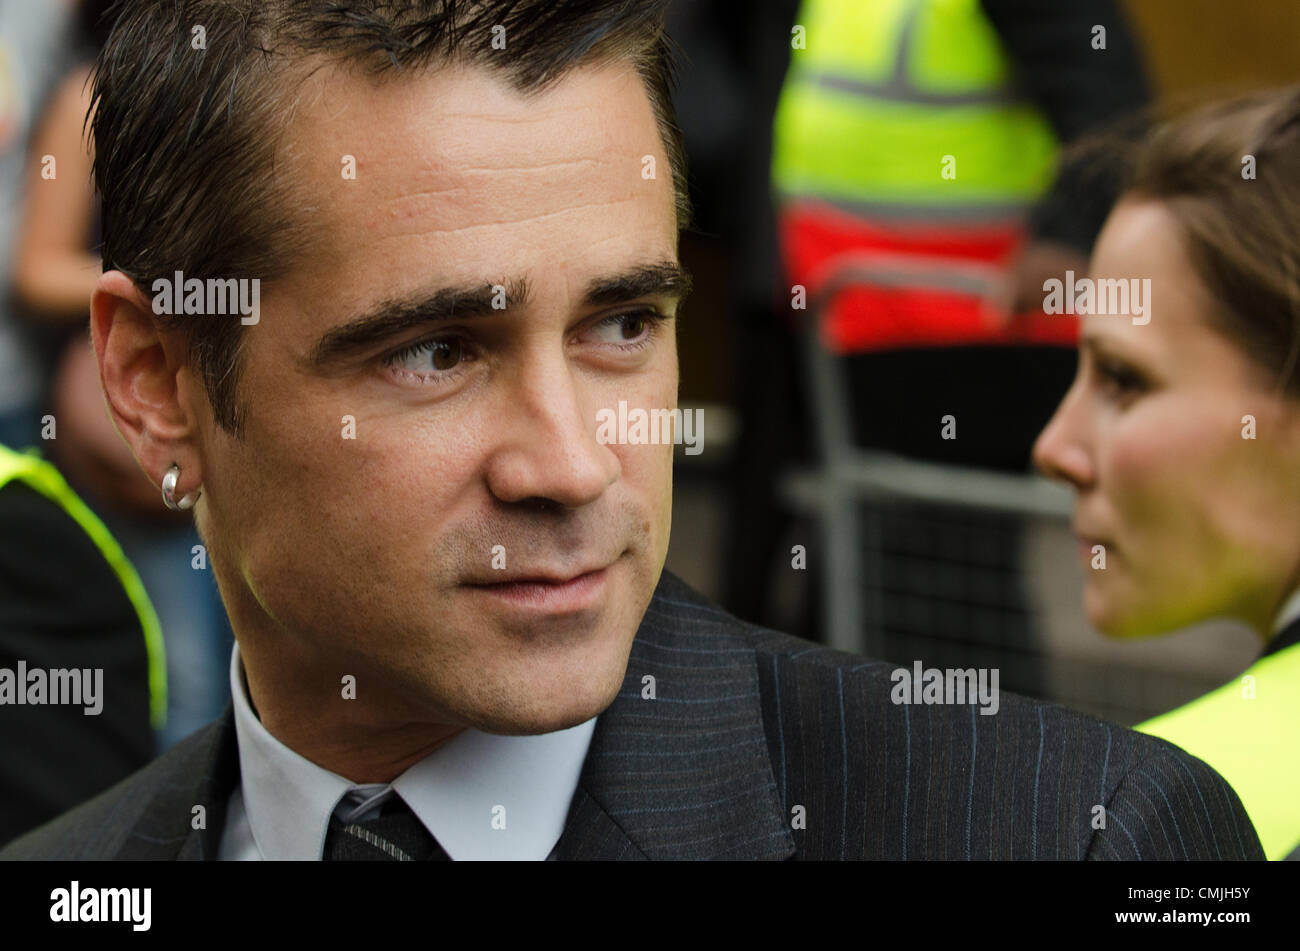 16th Aug 2012. Colin Farrell at Total Recall Premiere Leicester Square on Thursday 16th August 2012 Credit:  Prixnews - Stock Image